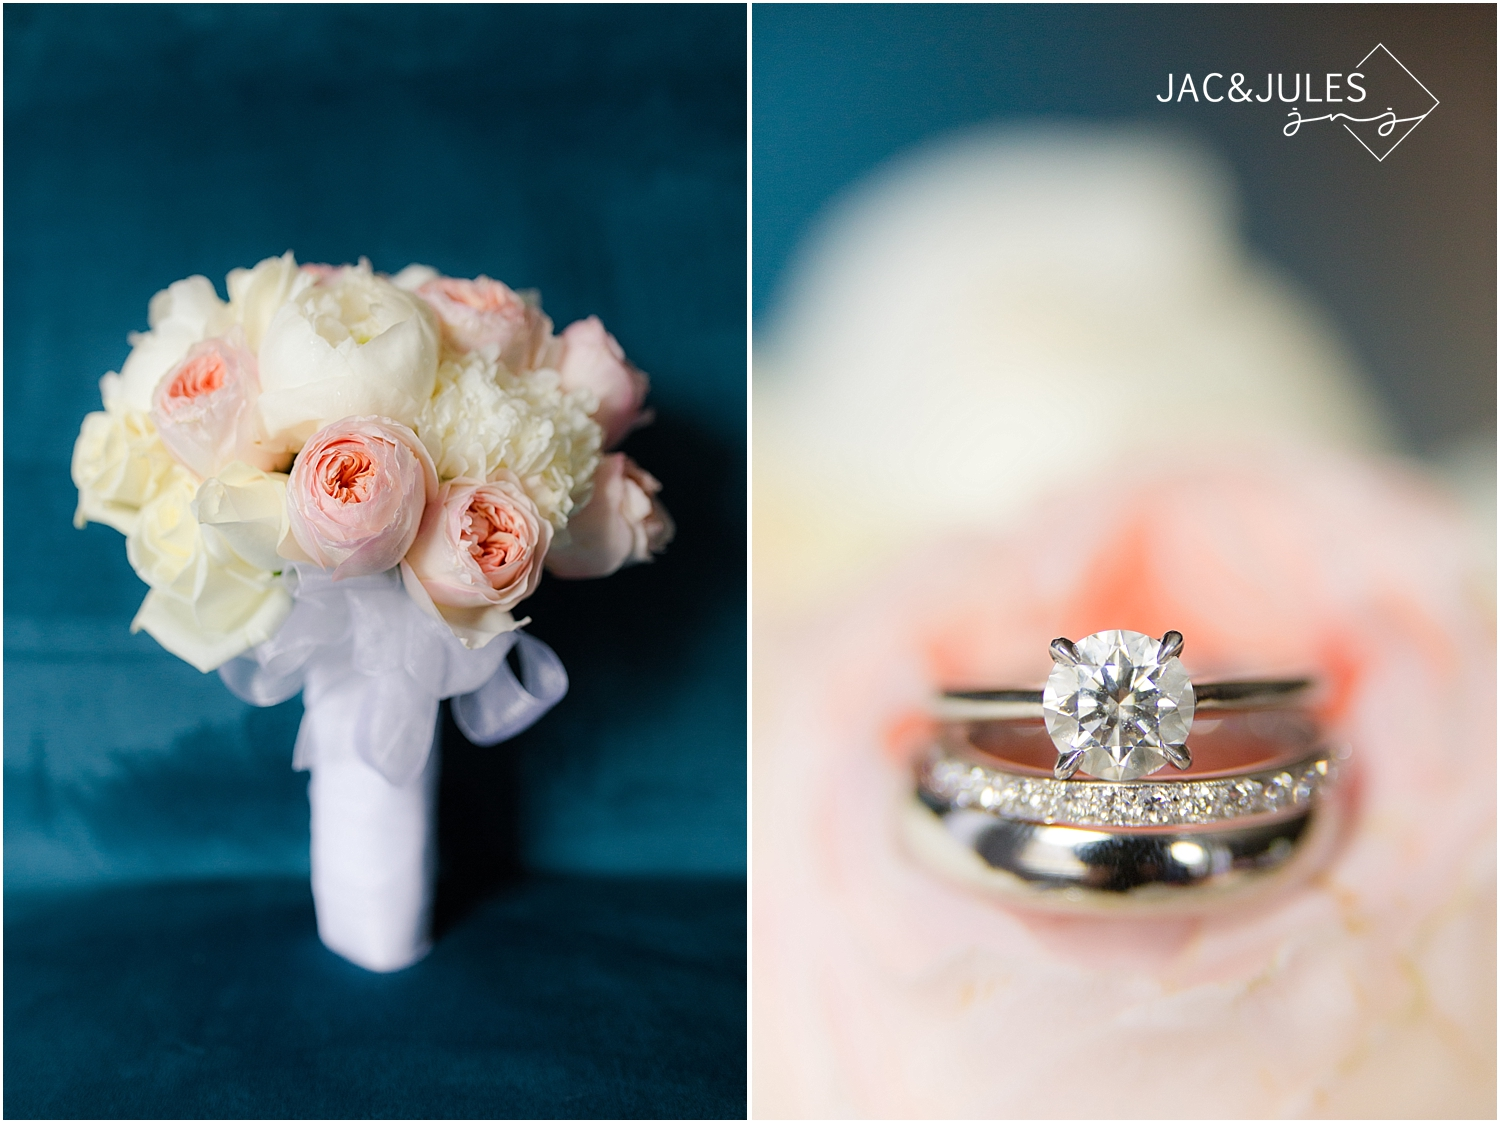 jacnjules photographs classic brides bouquet of roses